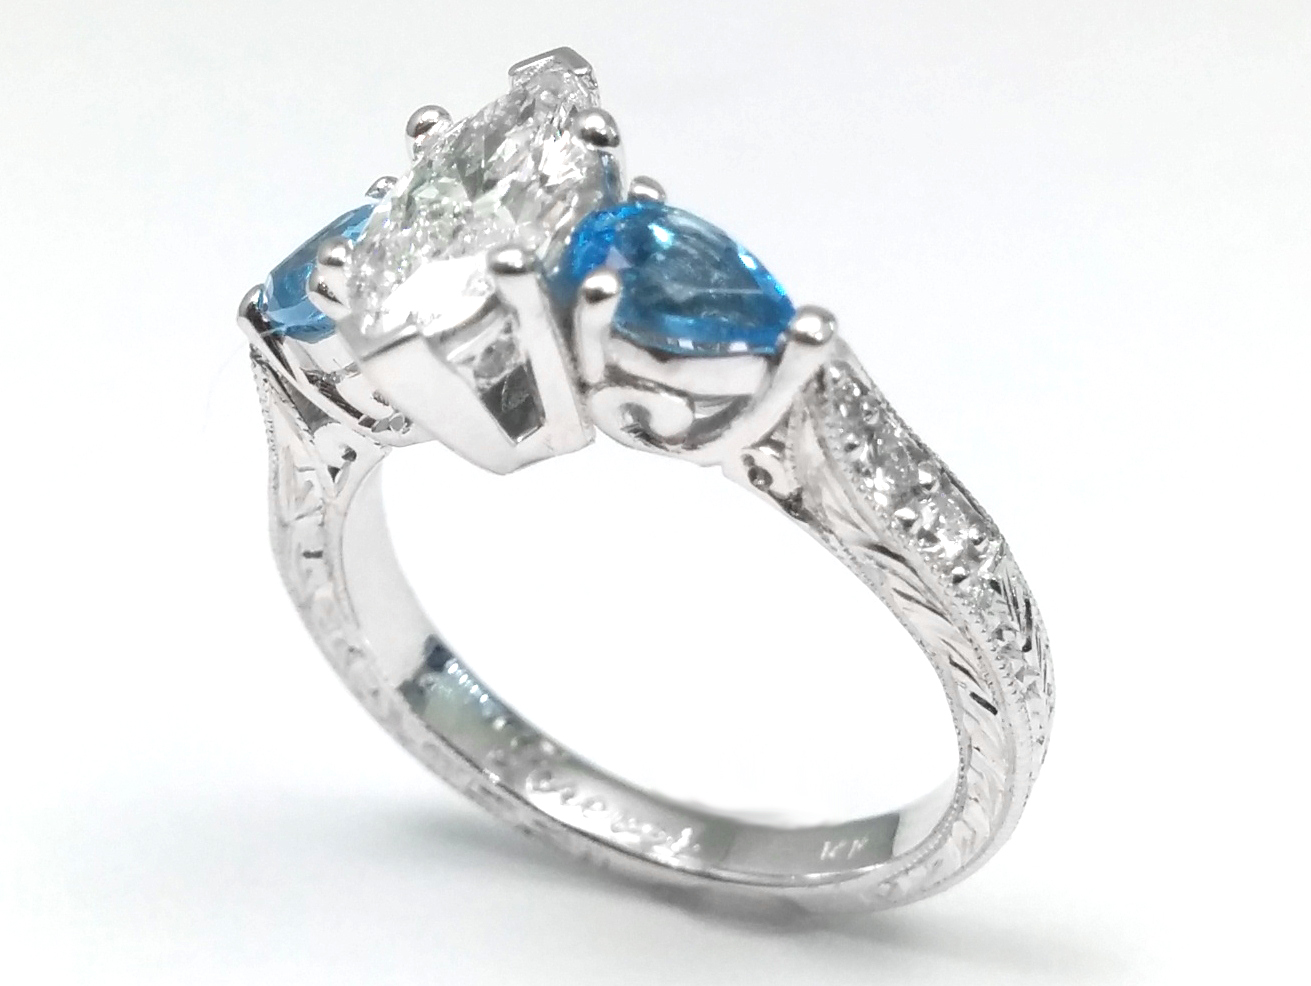 Marquise Cut Diamond Engagement Ring Blue Topaz Pear side stones Hand Engraved White Gold band